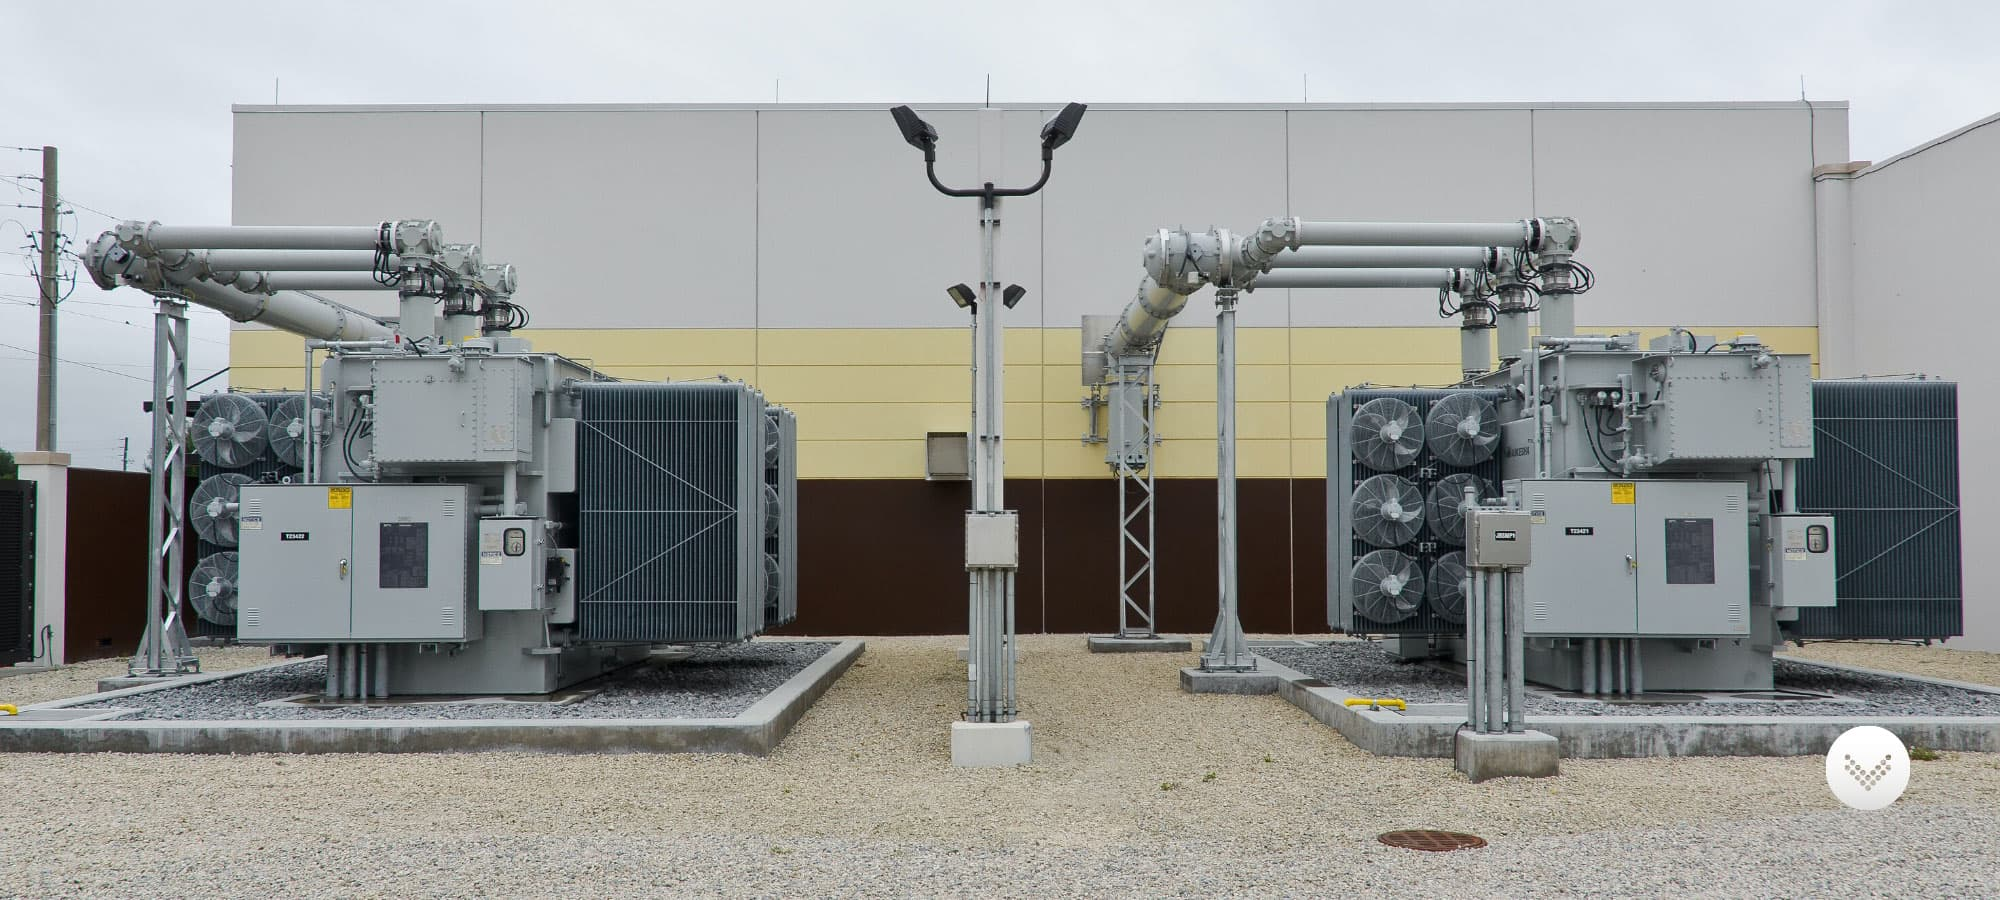 Electrical transformer site situated outside of a building